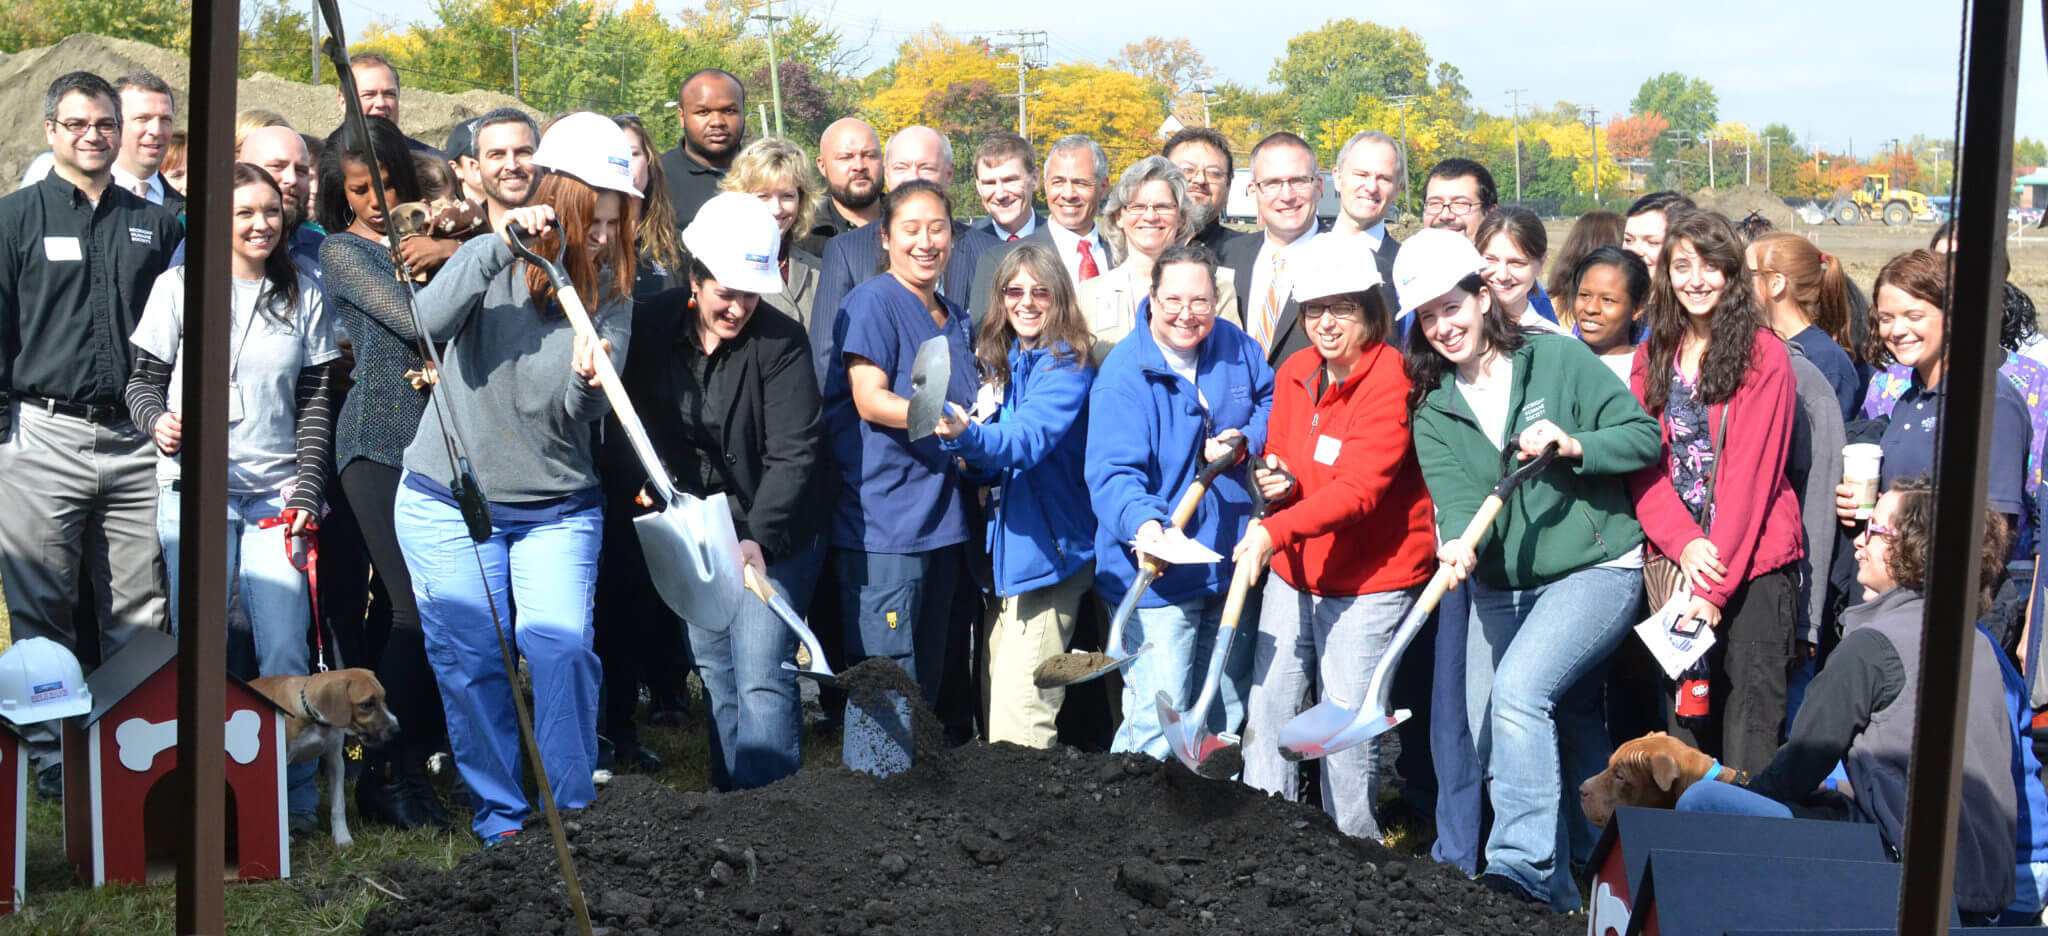 MHS staff is enthusiastic about our new Detroit Animal Care Campus, which will help us save even more animal lives.